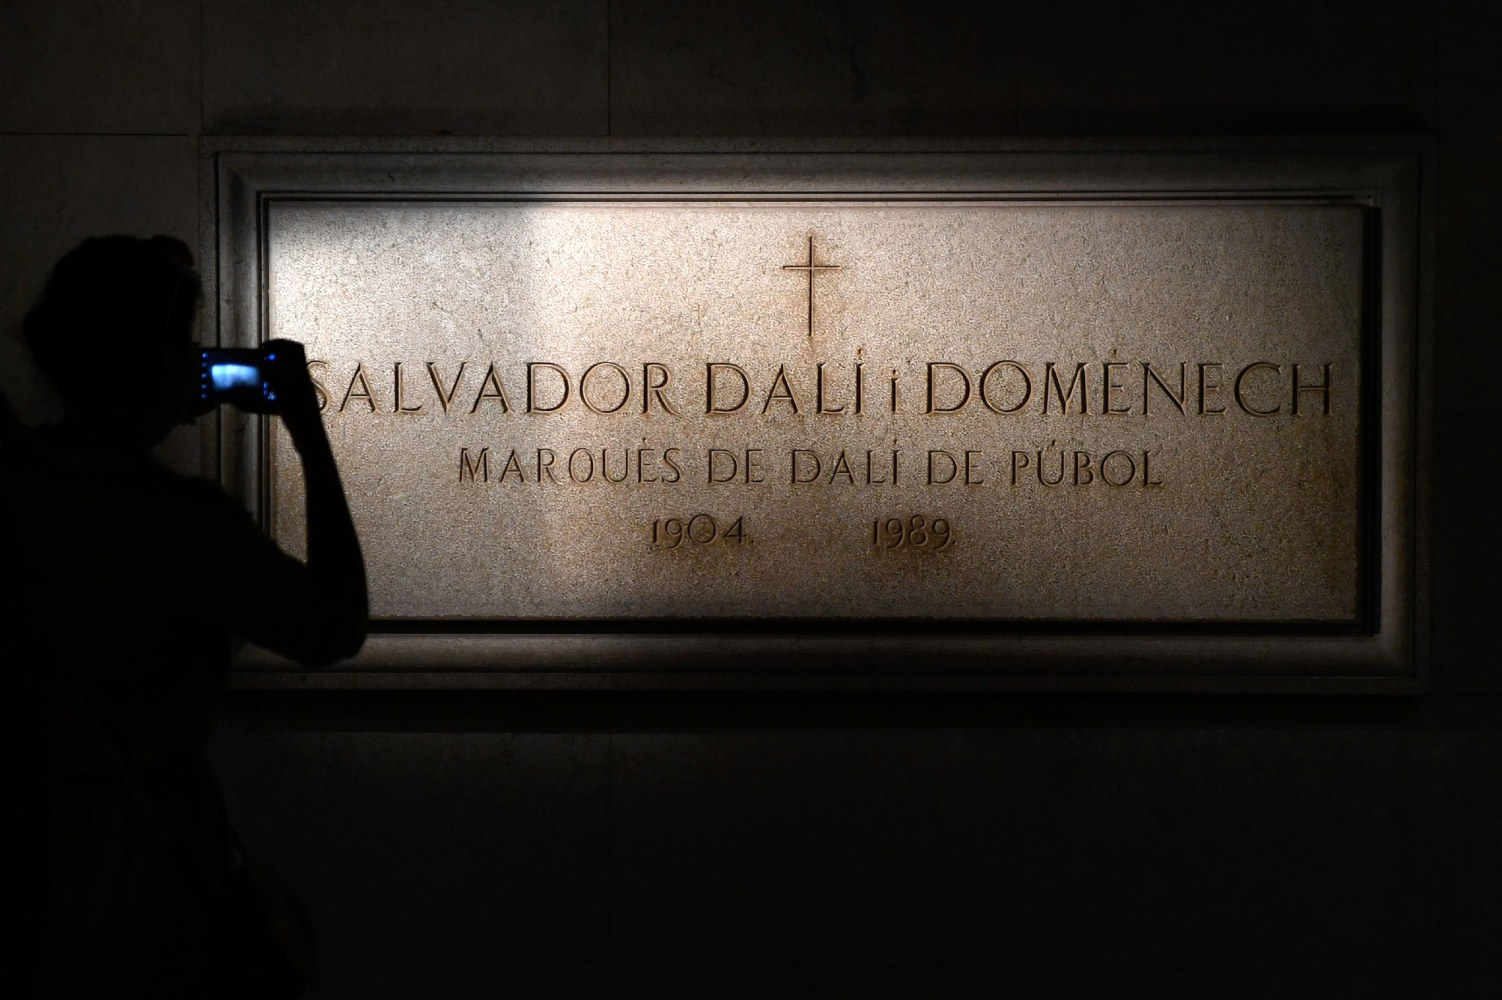 Spanish authorities exhume remains of Dali for paternity test